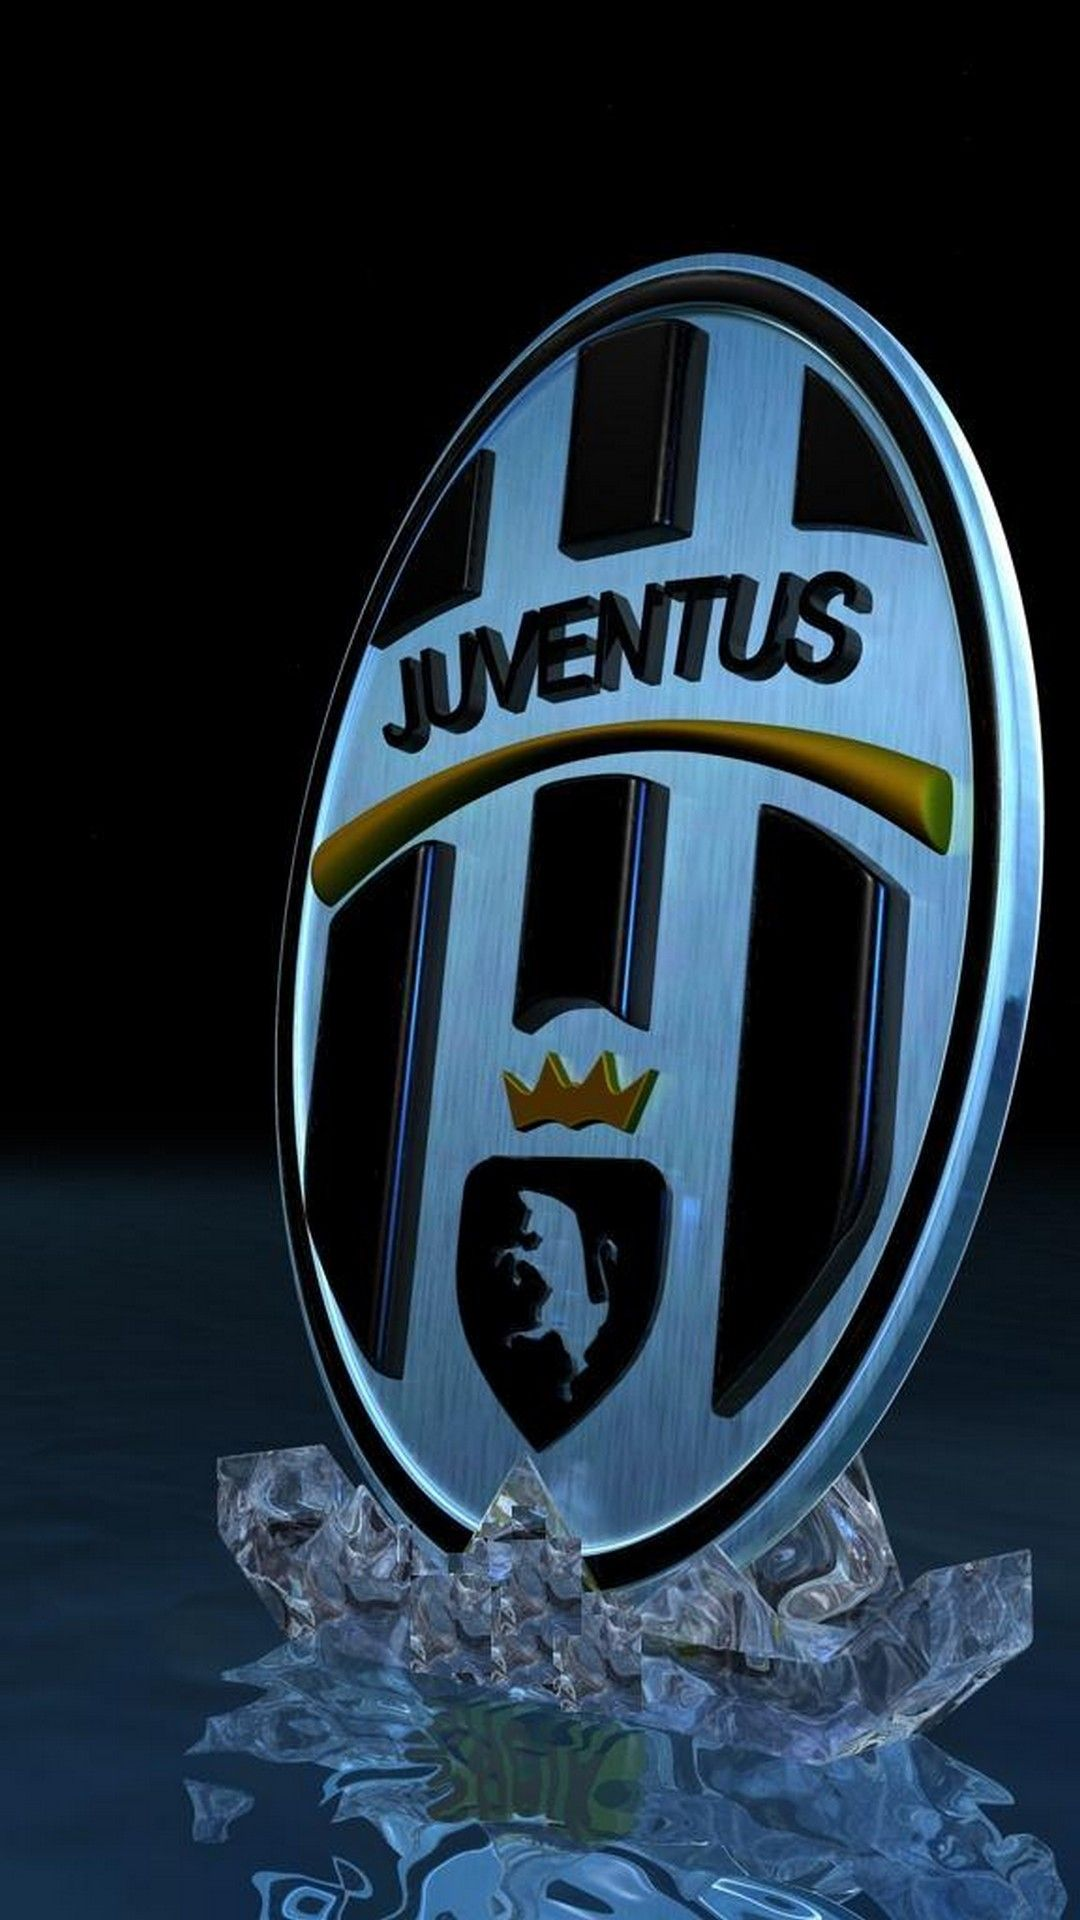 3d Juventus Wallpaper Iphone Best Iphone Wallpaper Juventus Wallpapers Best Iphone Wallpapers Iphone Wallpaper